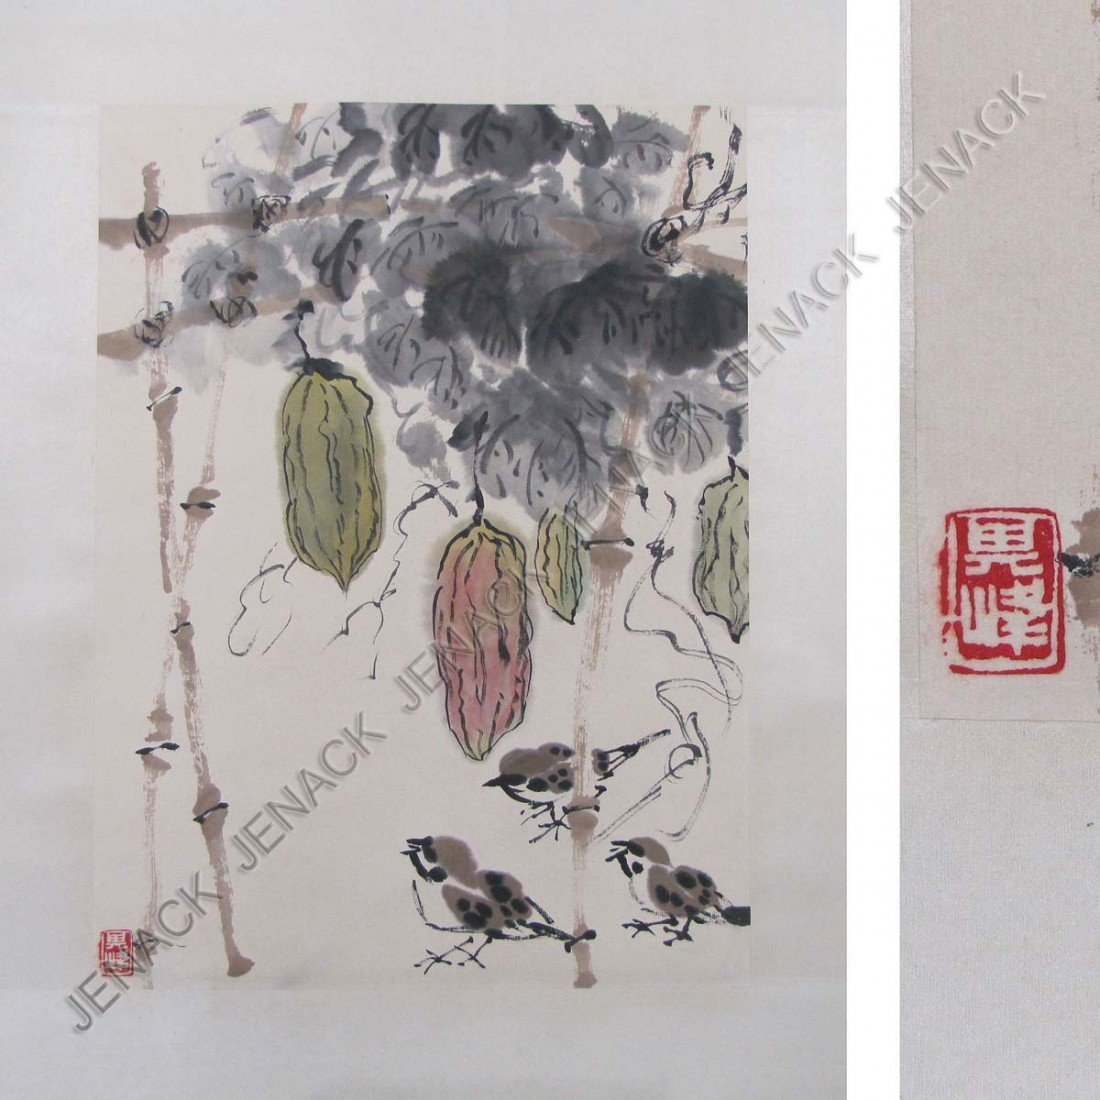 35: MANNER OF SUN QI FENG, CHINESE SCROLL PAINTING